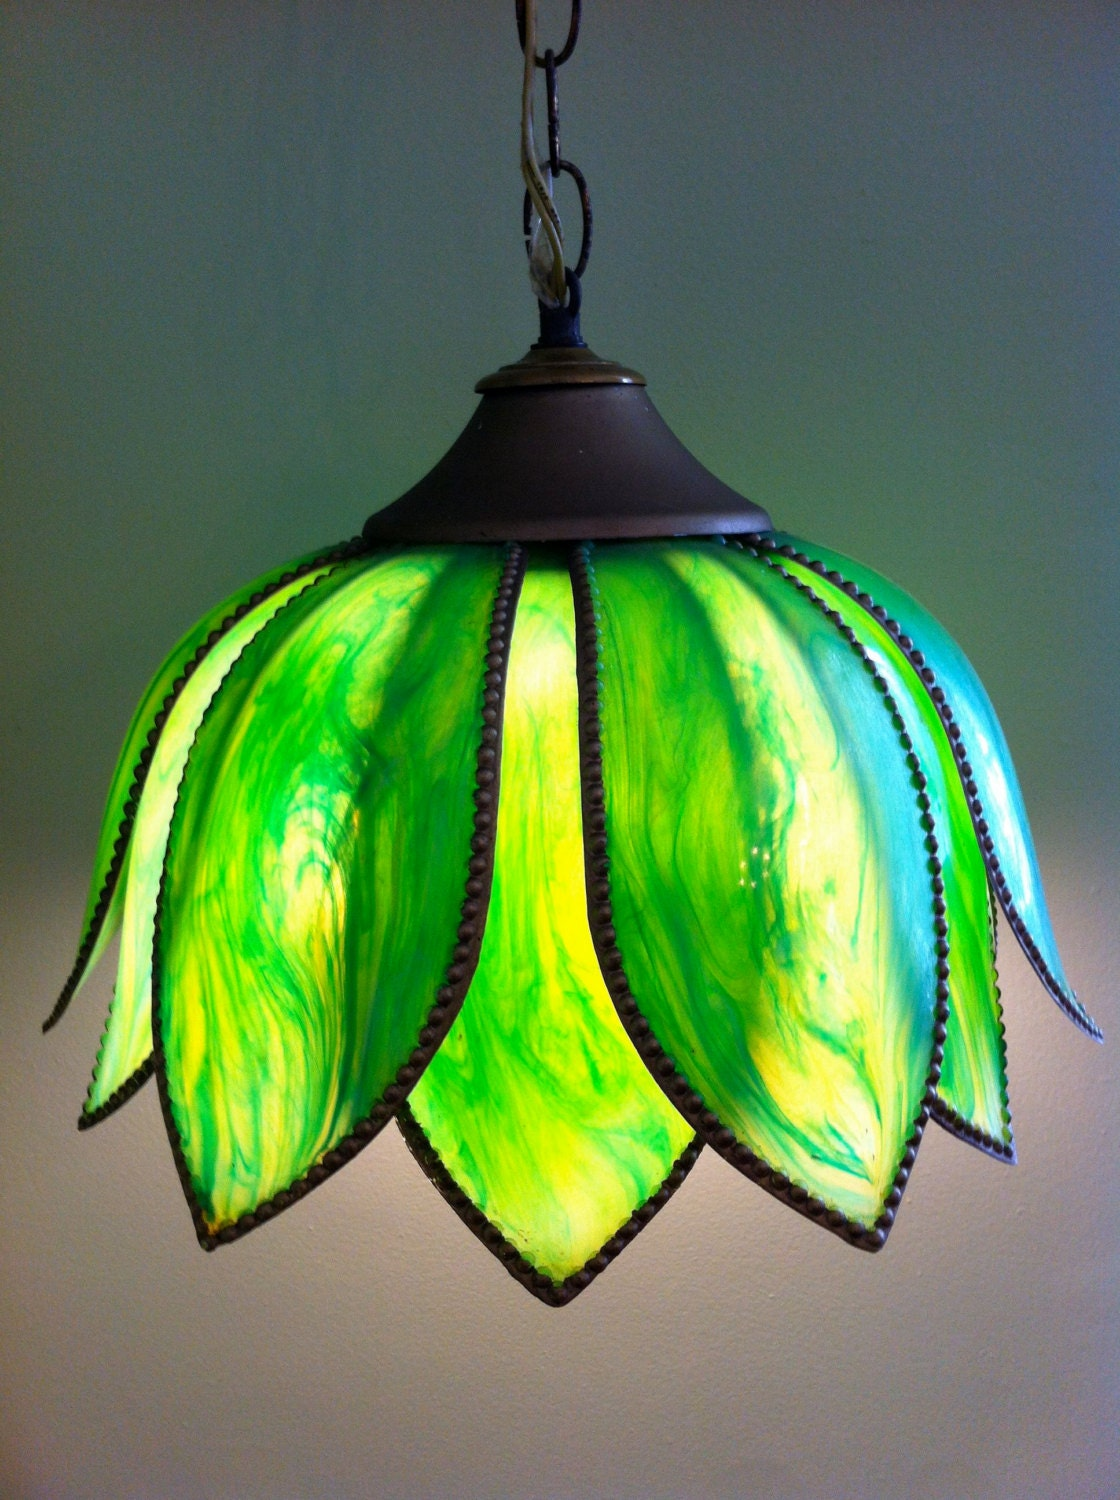 Vintage green lotus flower tulip hanging light fixture pendant